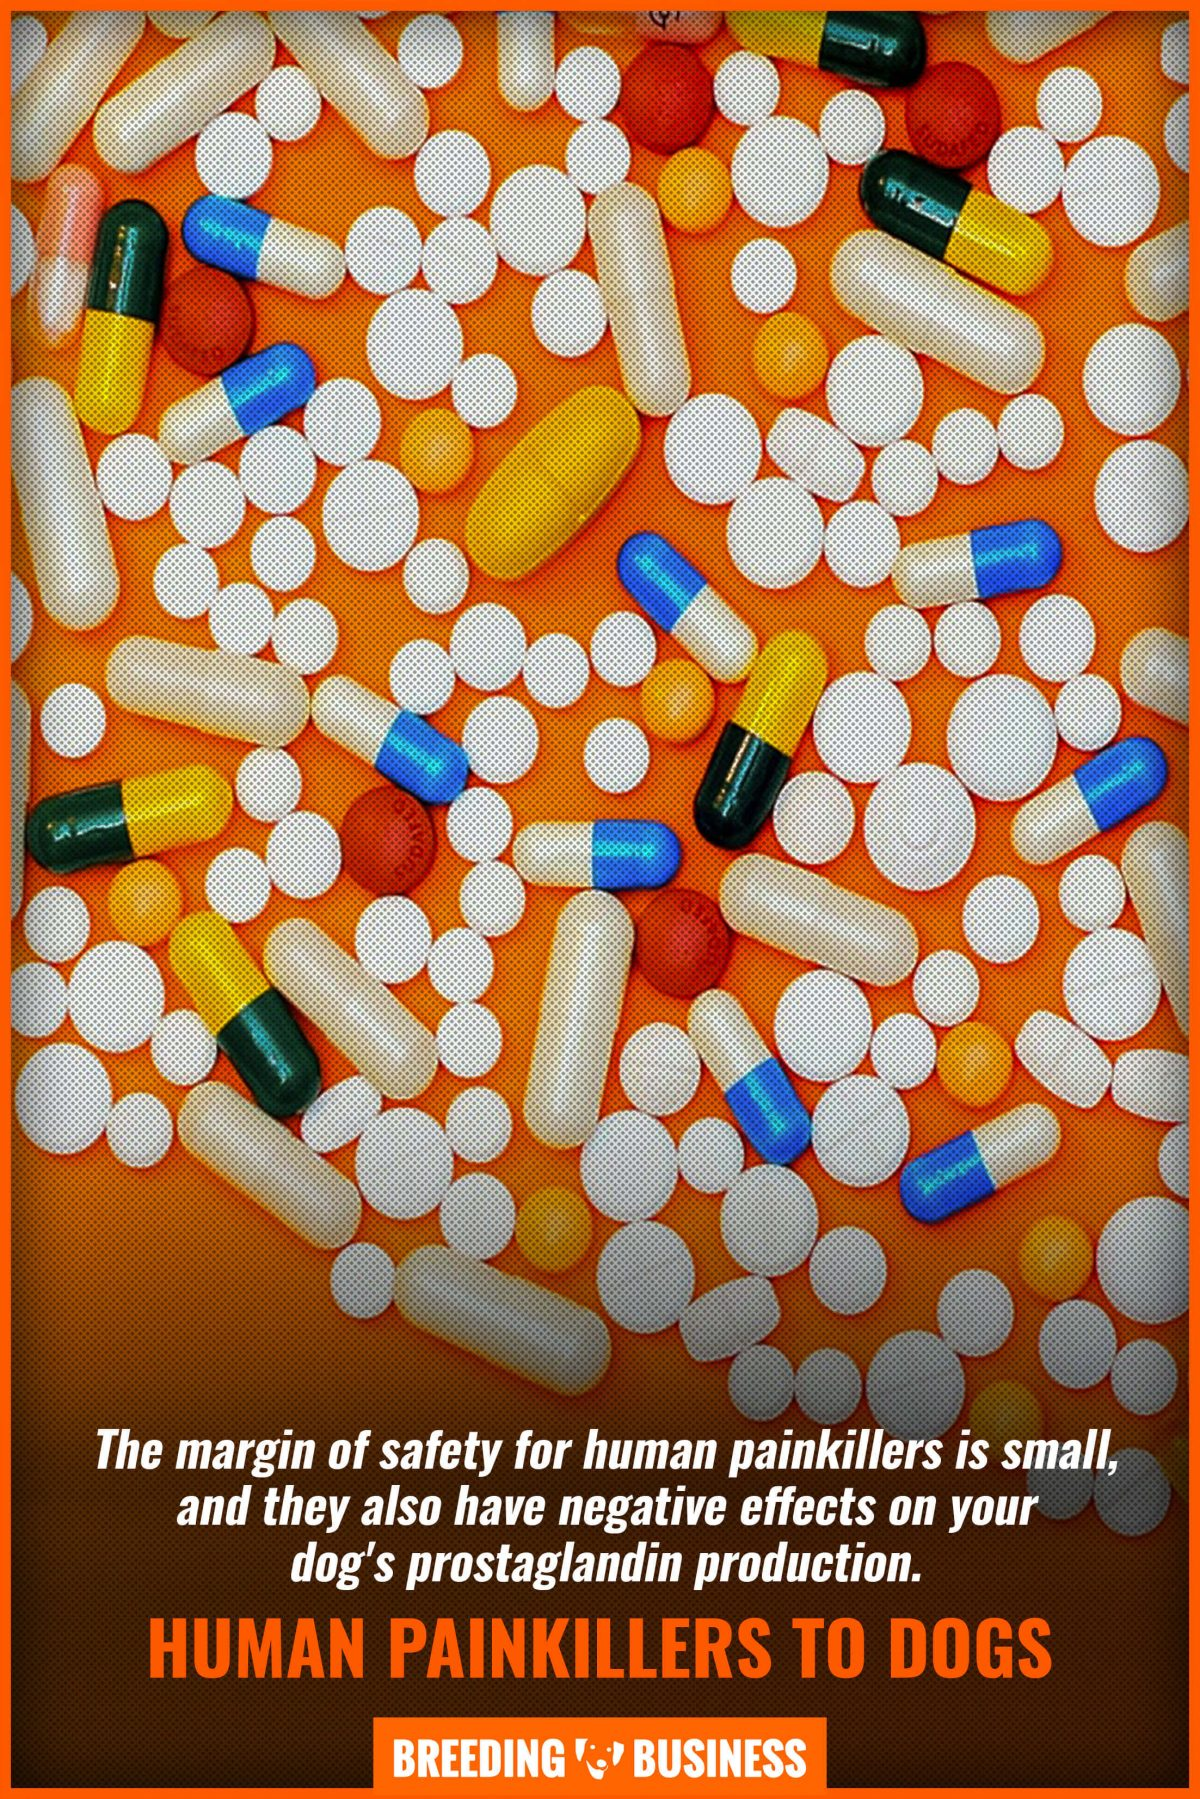 human painkillers to dogs